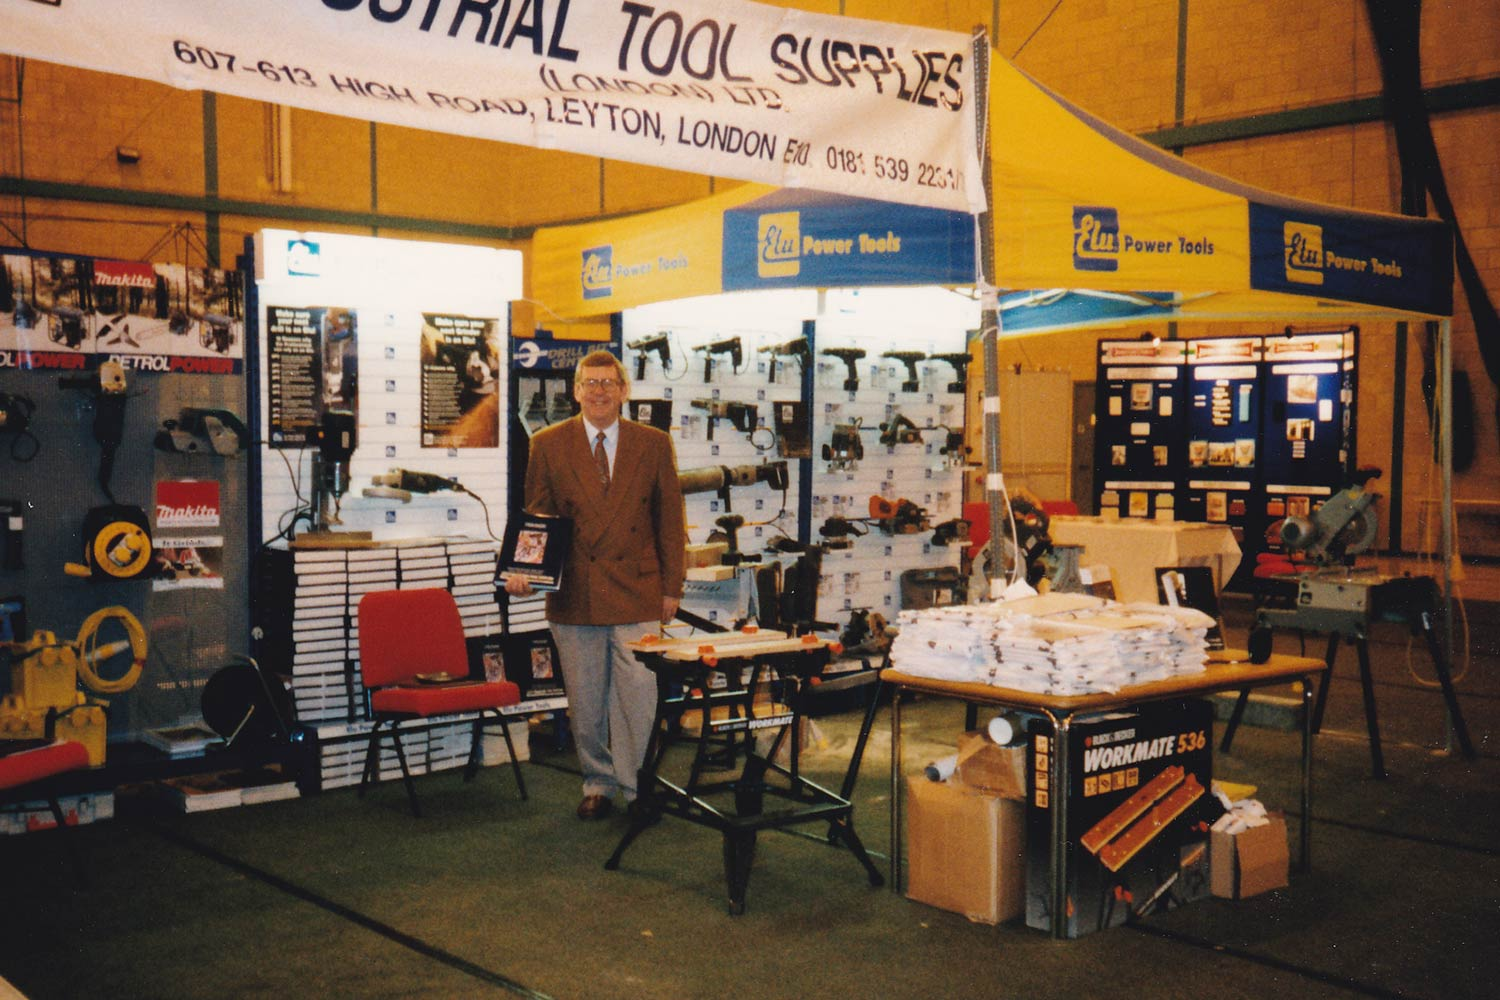 1995 - ITS Exhibiting at a National Tool Show